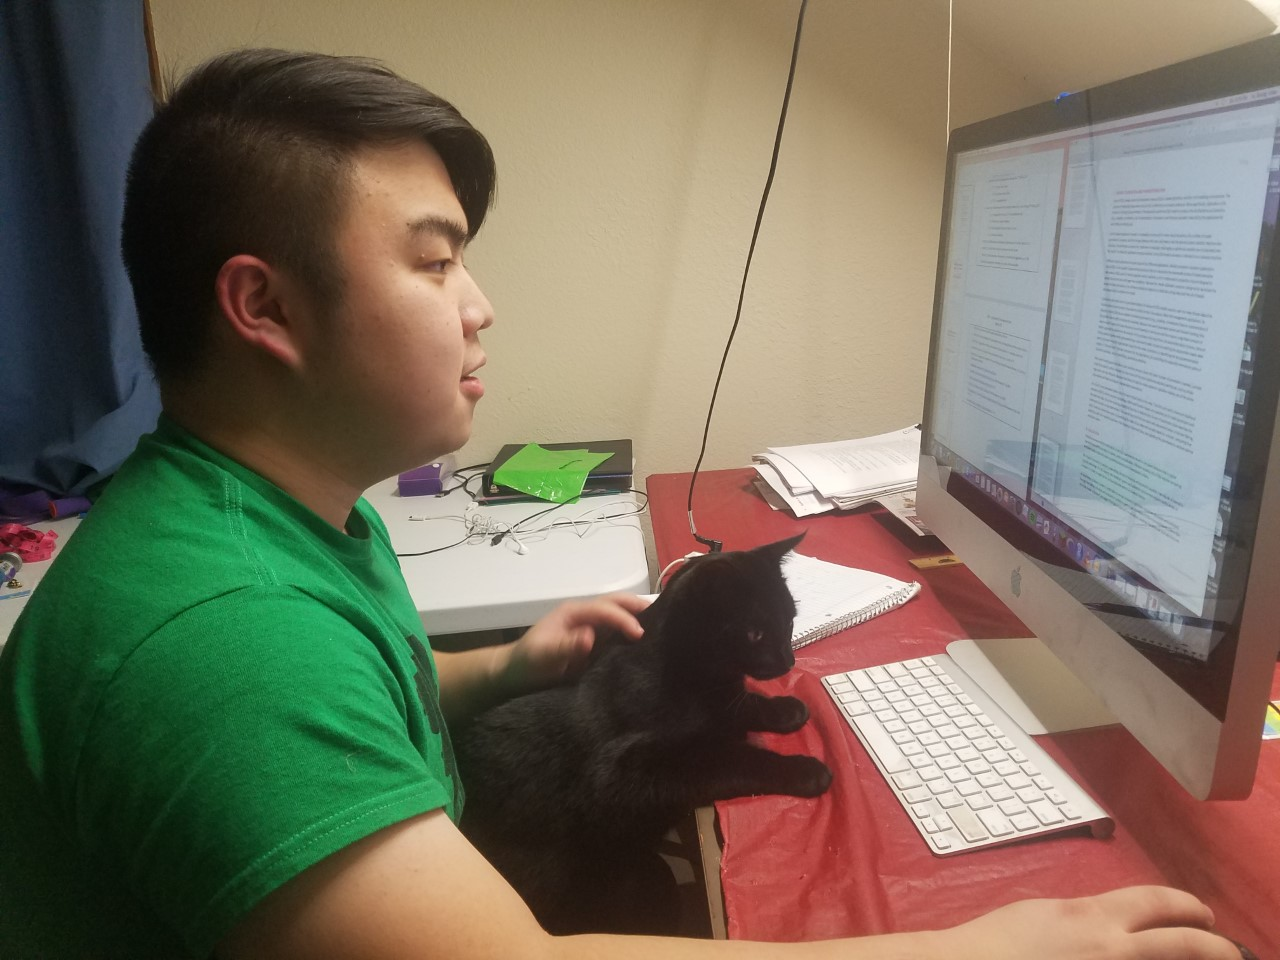 Xu studies with his cat perched on his lap